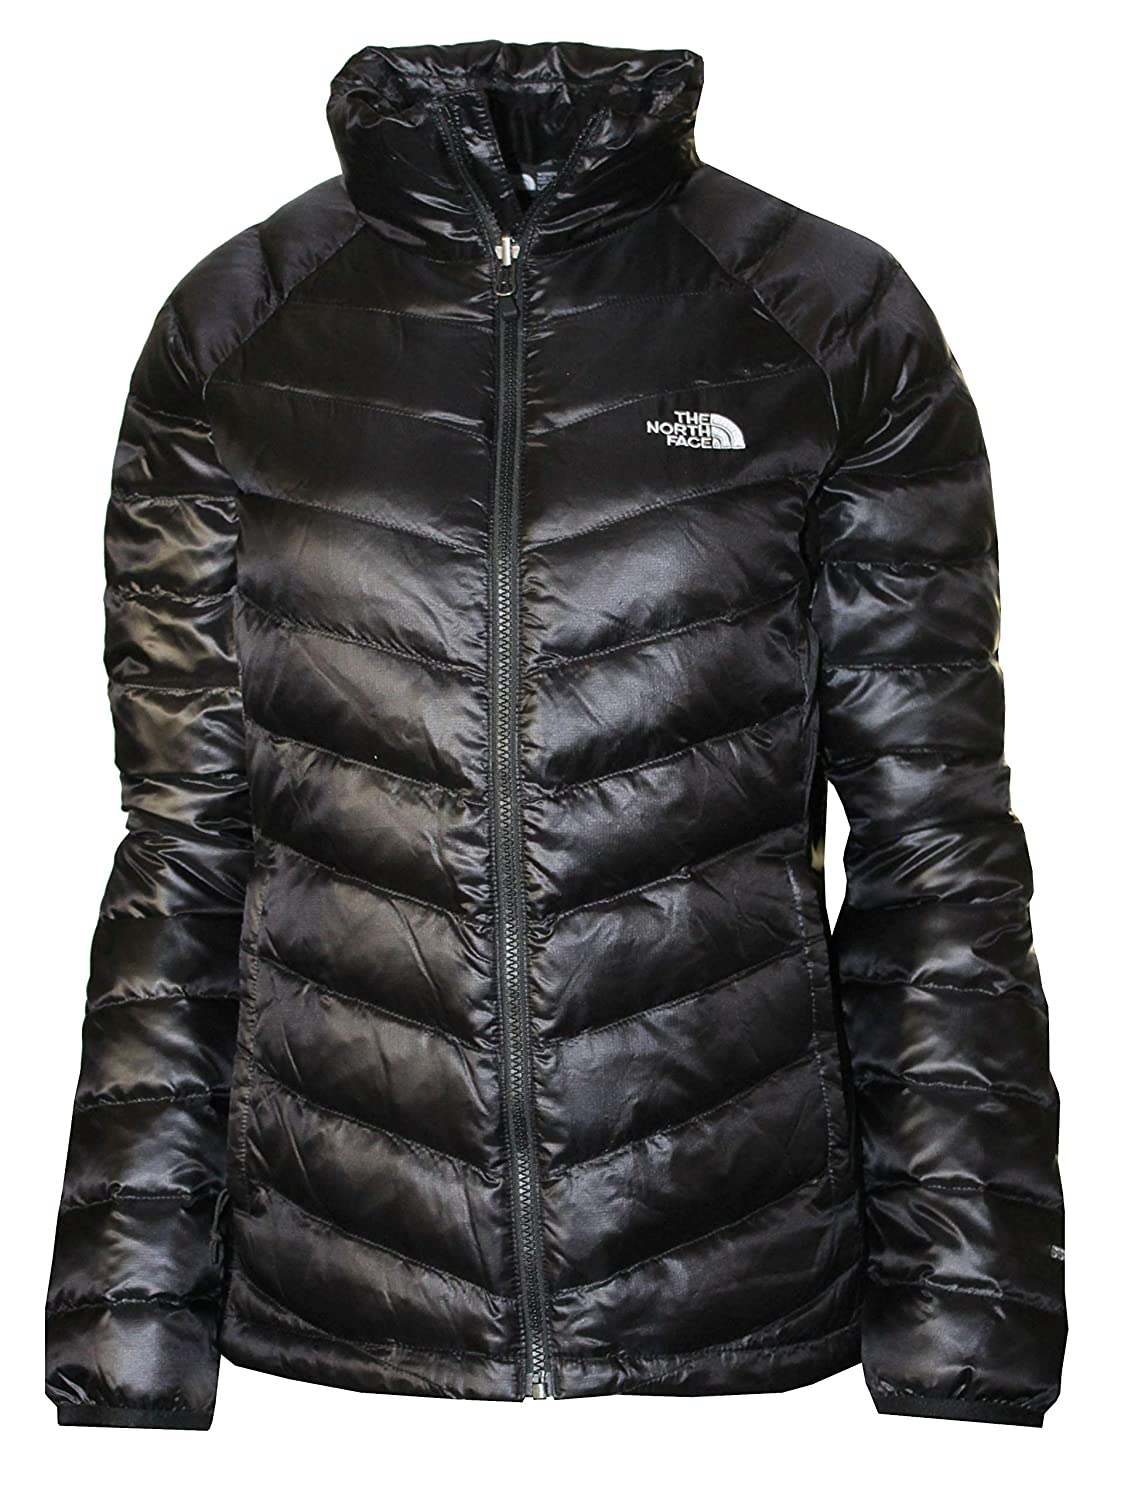 945d3c4b3 The North Face Flare Women's Down 550 RTO Ski Jacket Puffer